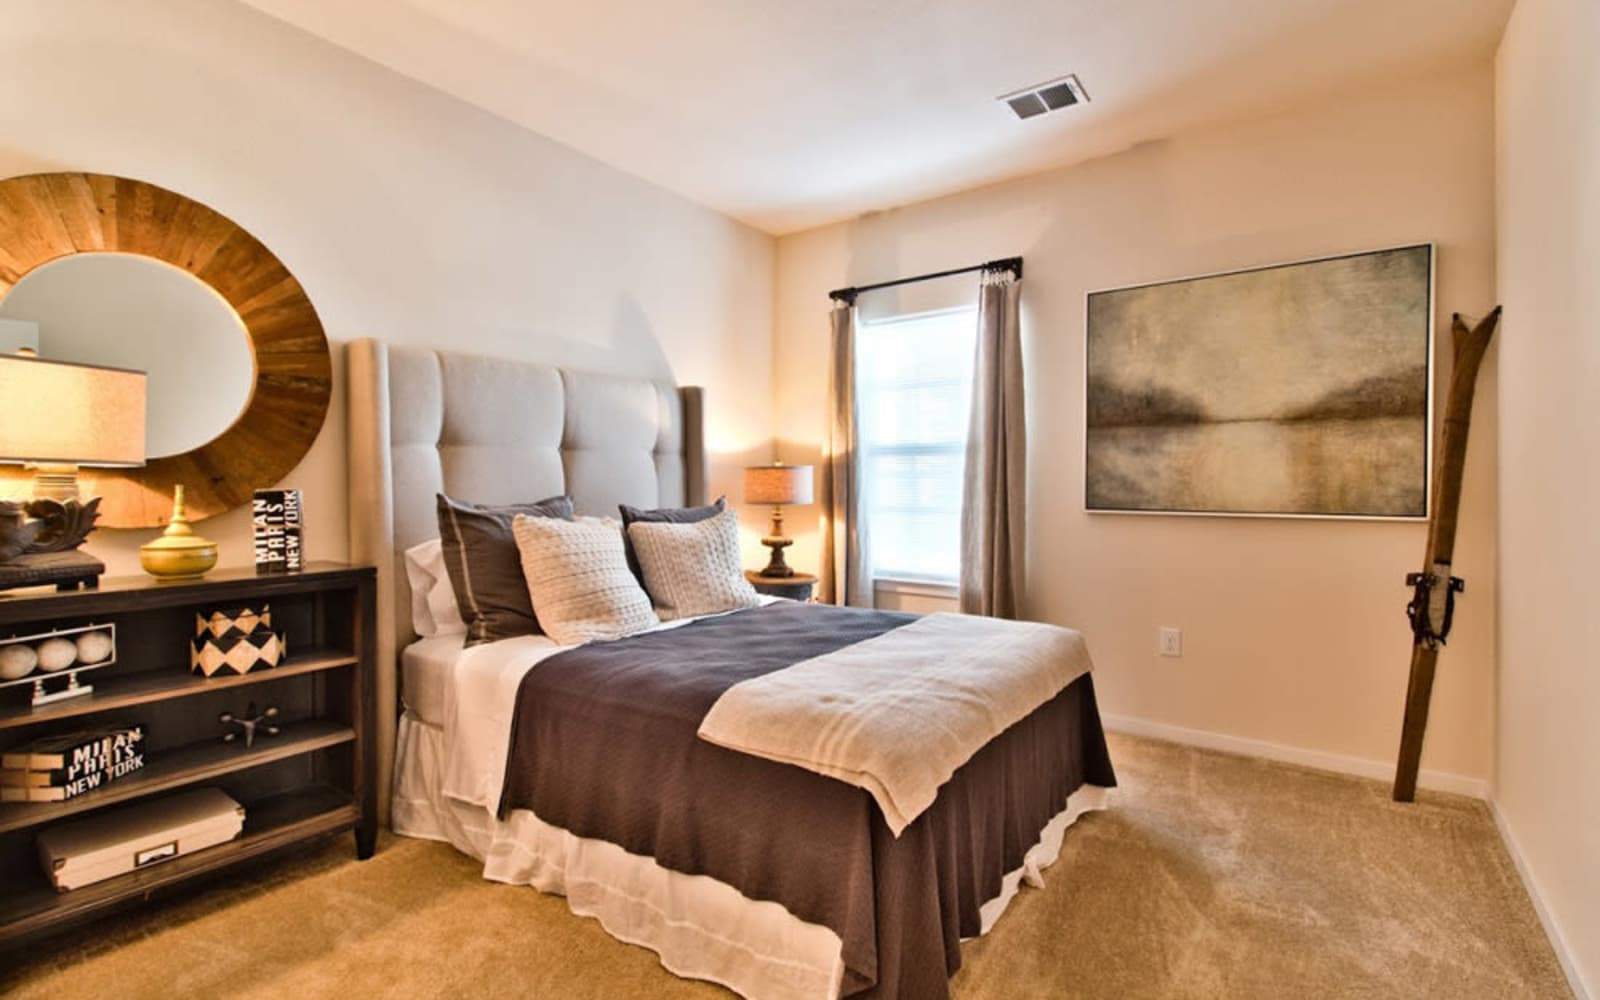 Spacious bedrooms at Aventura at Mid Rivers in Saint Charles, Missouri.